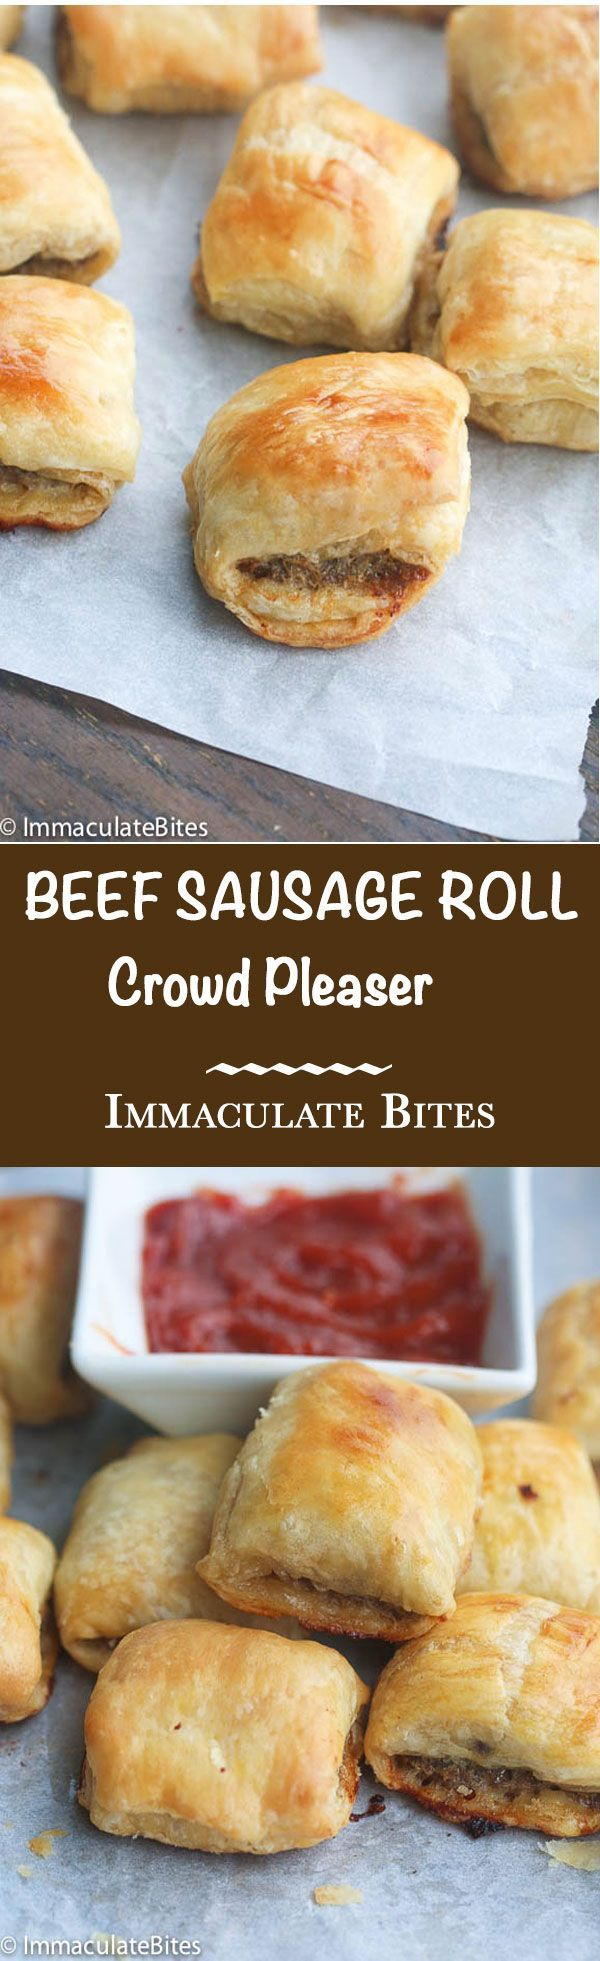 Beef sausage rolls made with puff pastry - Quick, Easy and a Crowd Pleaser . Great as a snack , appetizer or Breakfast .